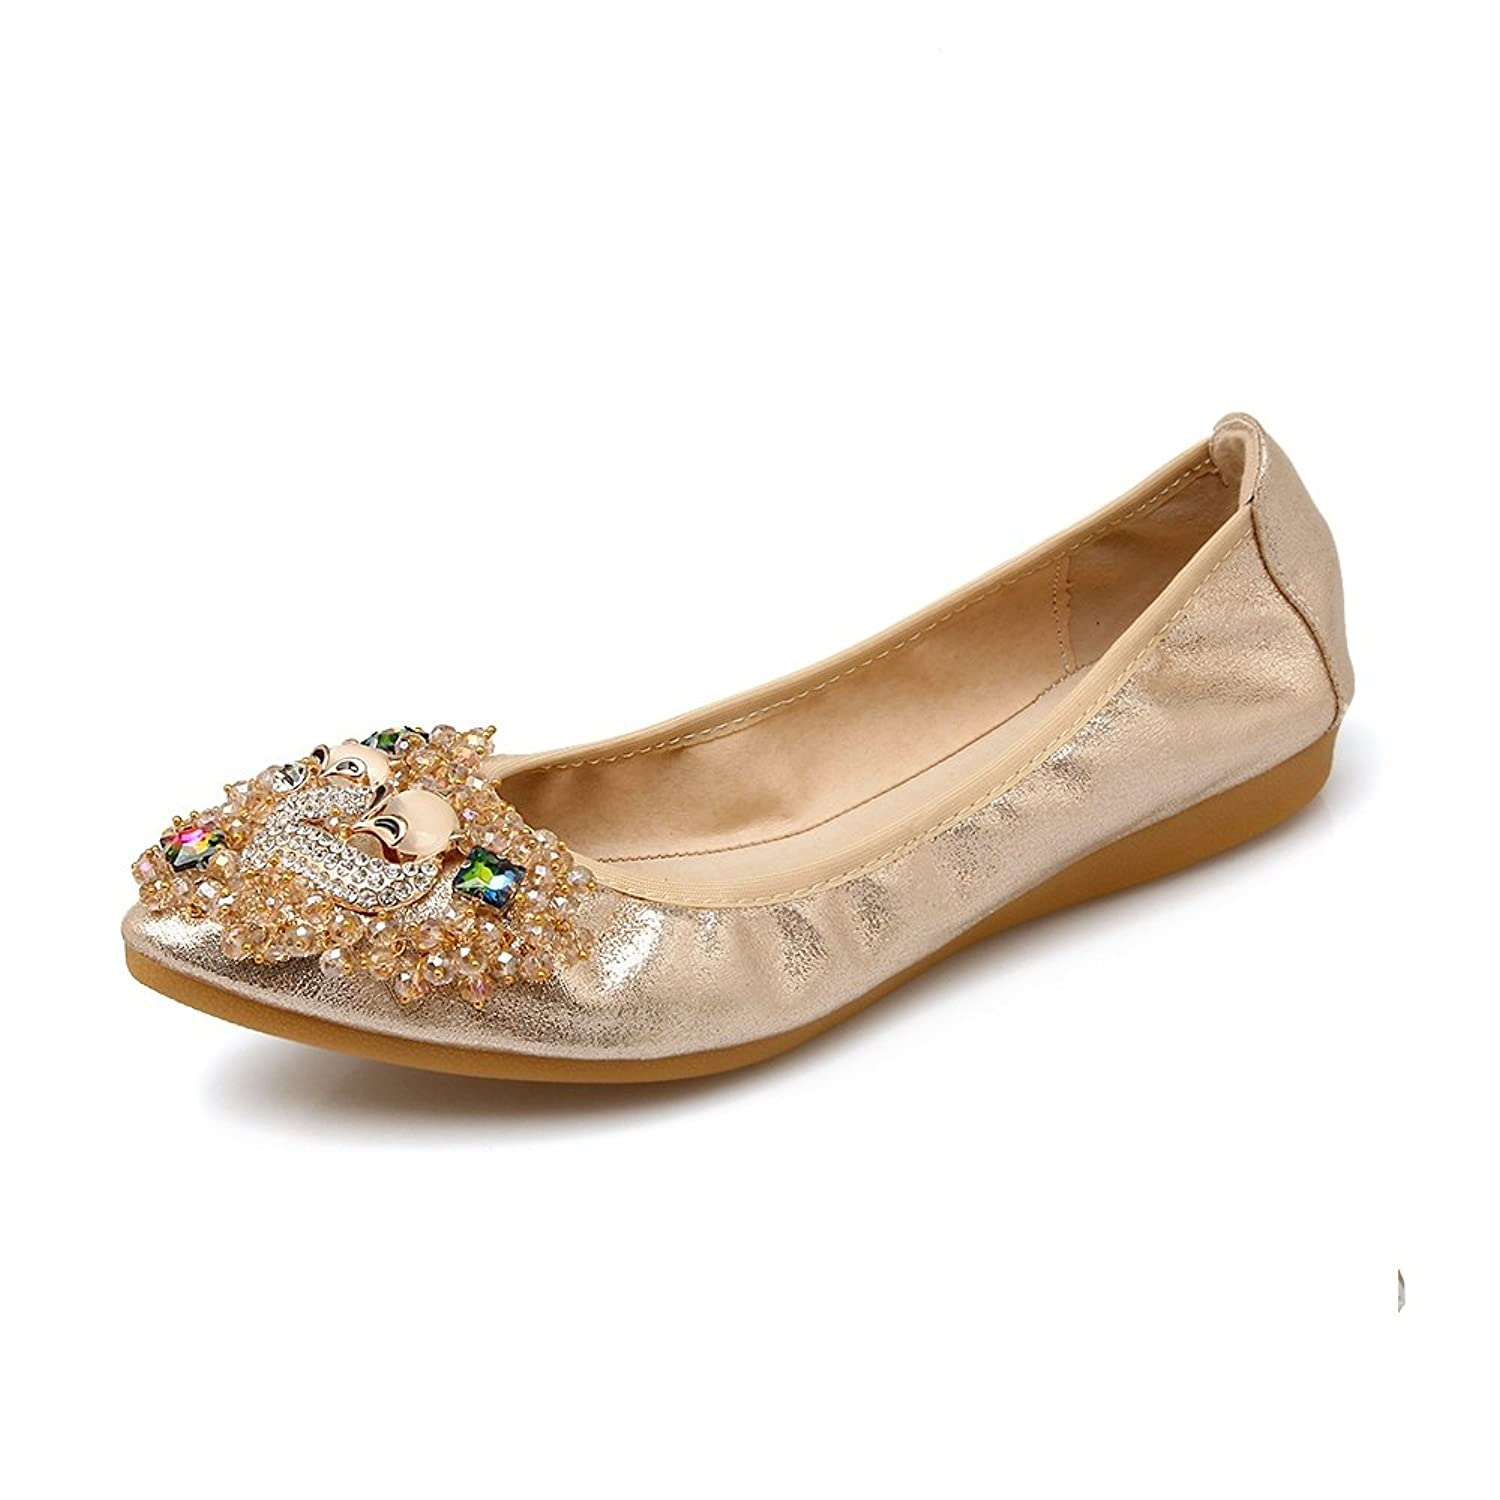 travel comforter you to comfortable the blog shoes flats stylish keep best ballet and on margaux for